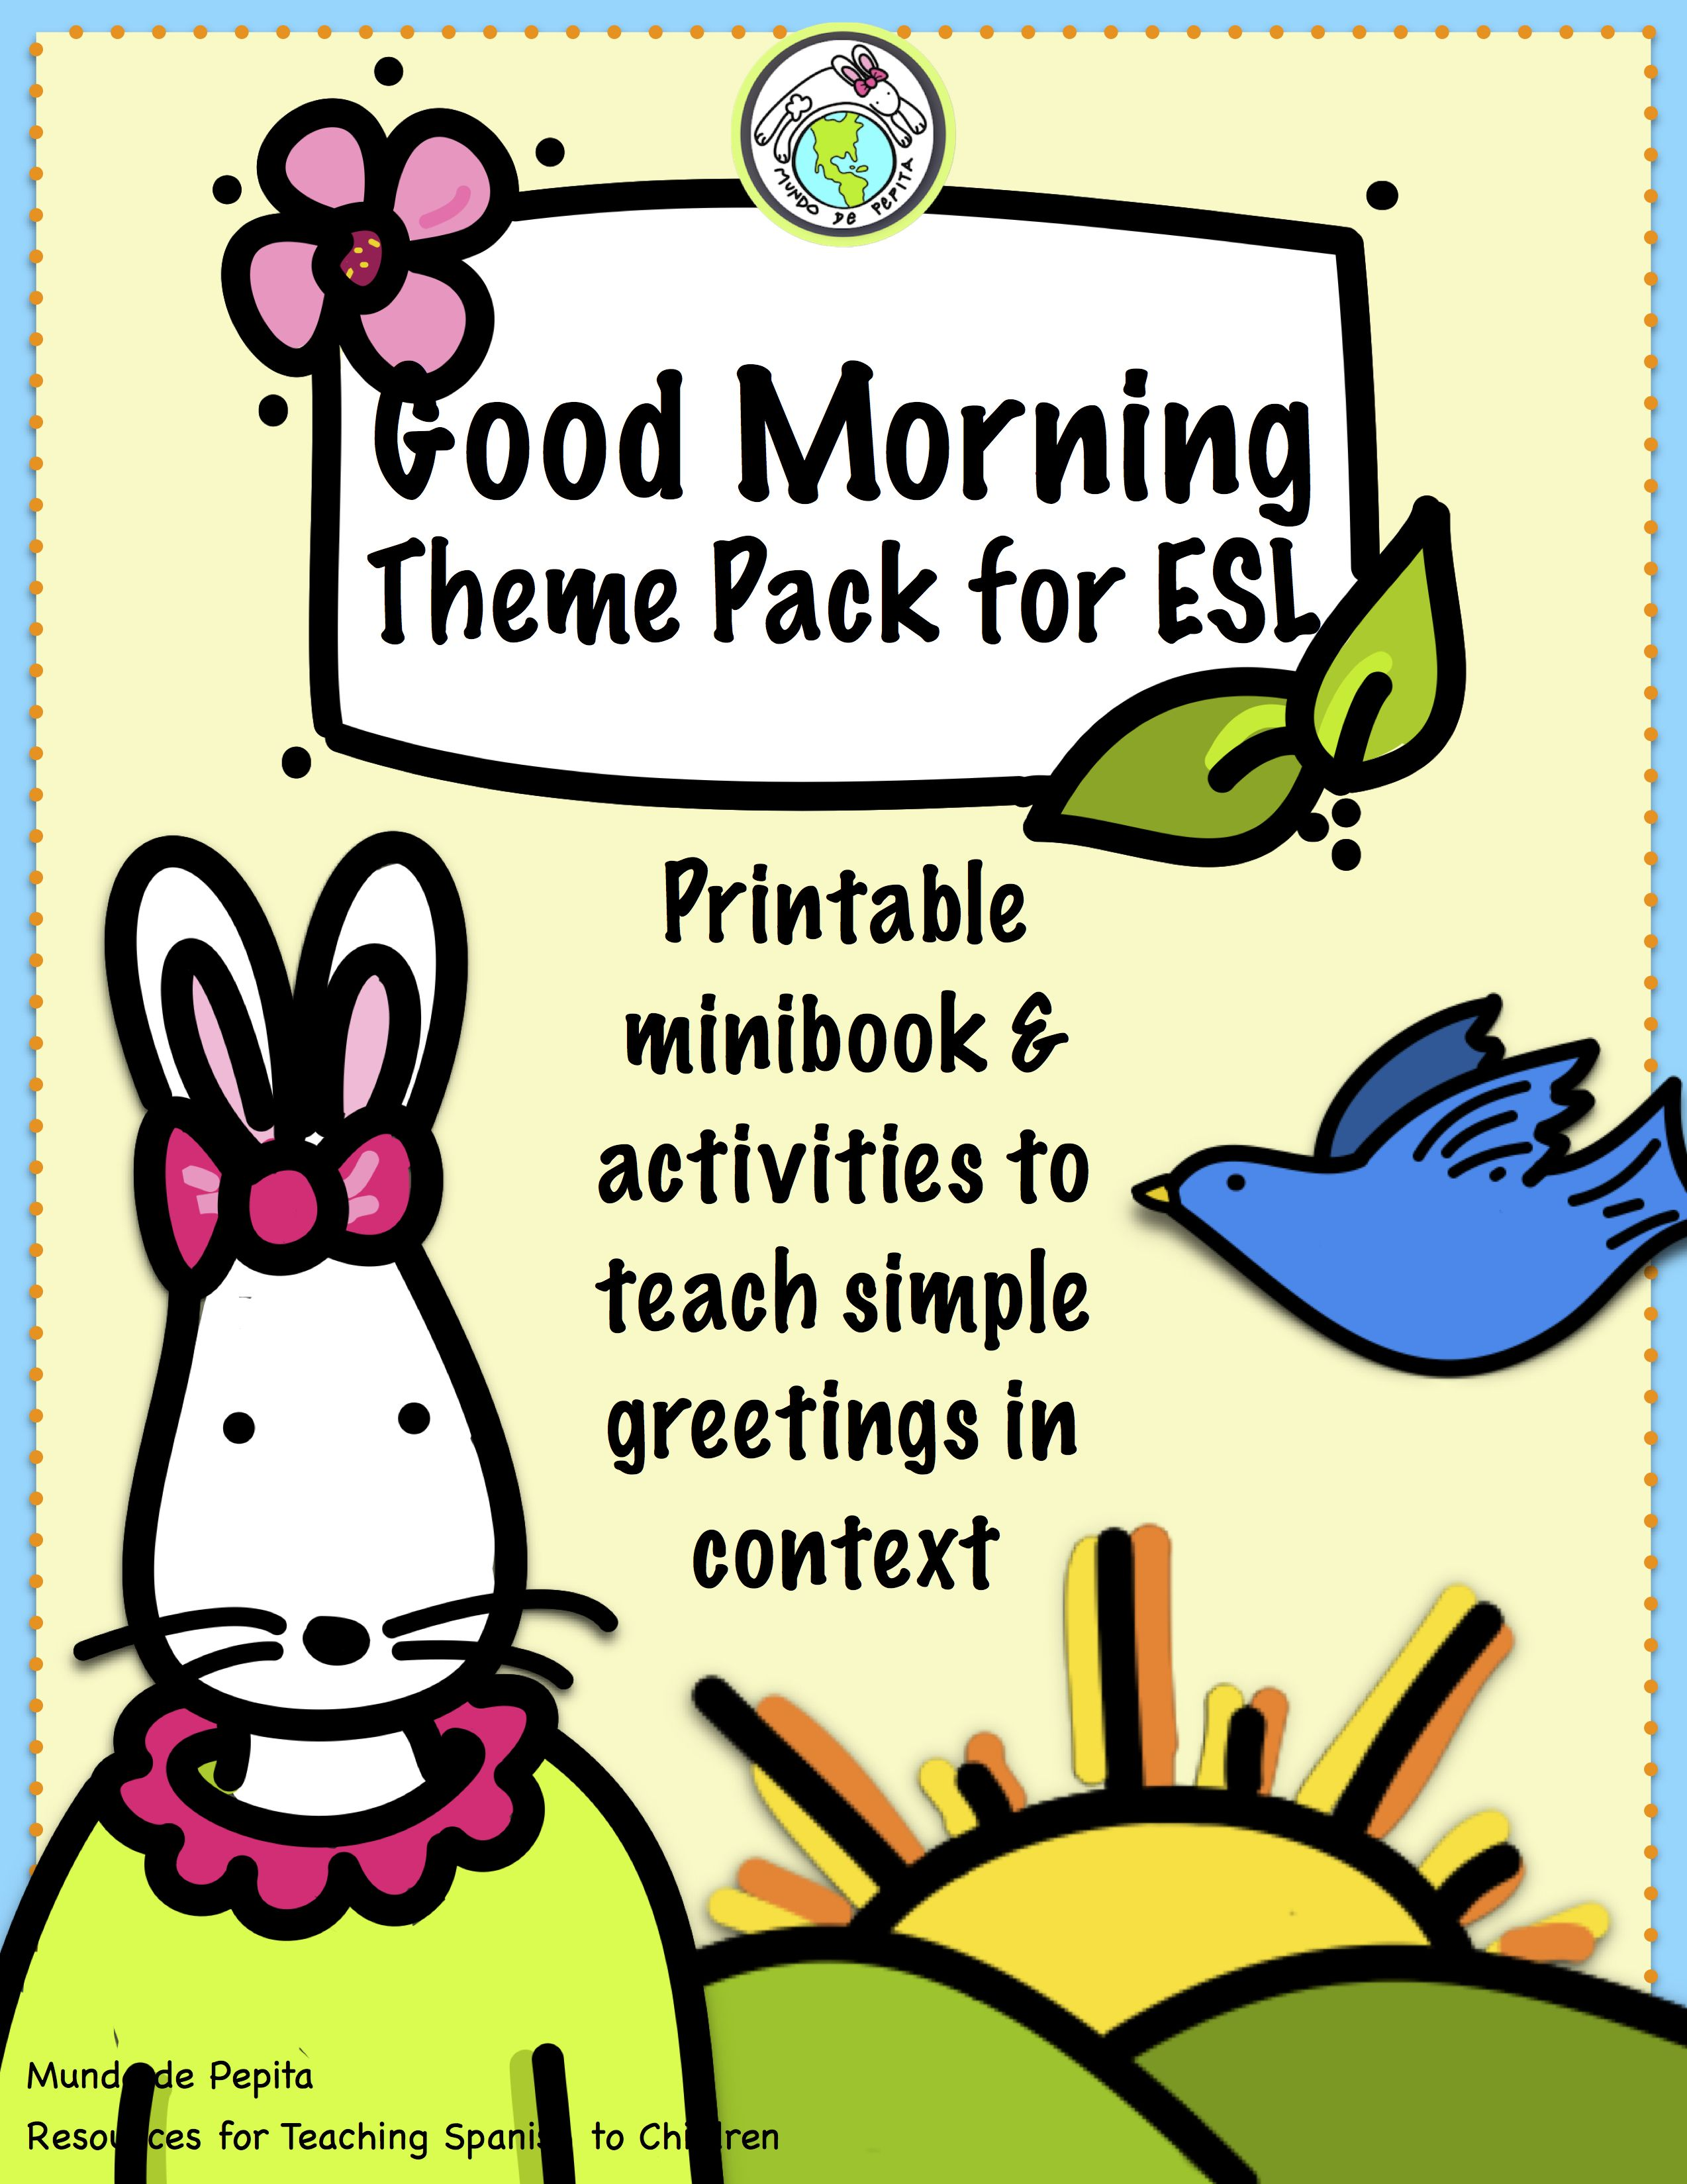 Good Morning Greetings Theme Pack For Esl Ell Learners Includes A Mini Book Story Cards Activities Ga Spanish Lessons For Kids Learning Spanish Mini Books